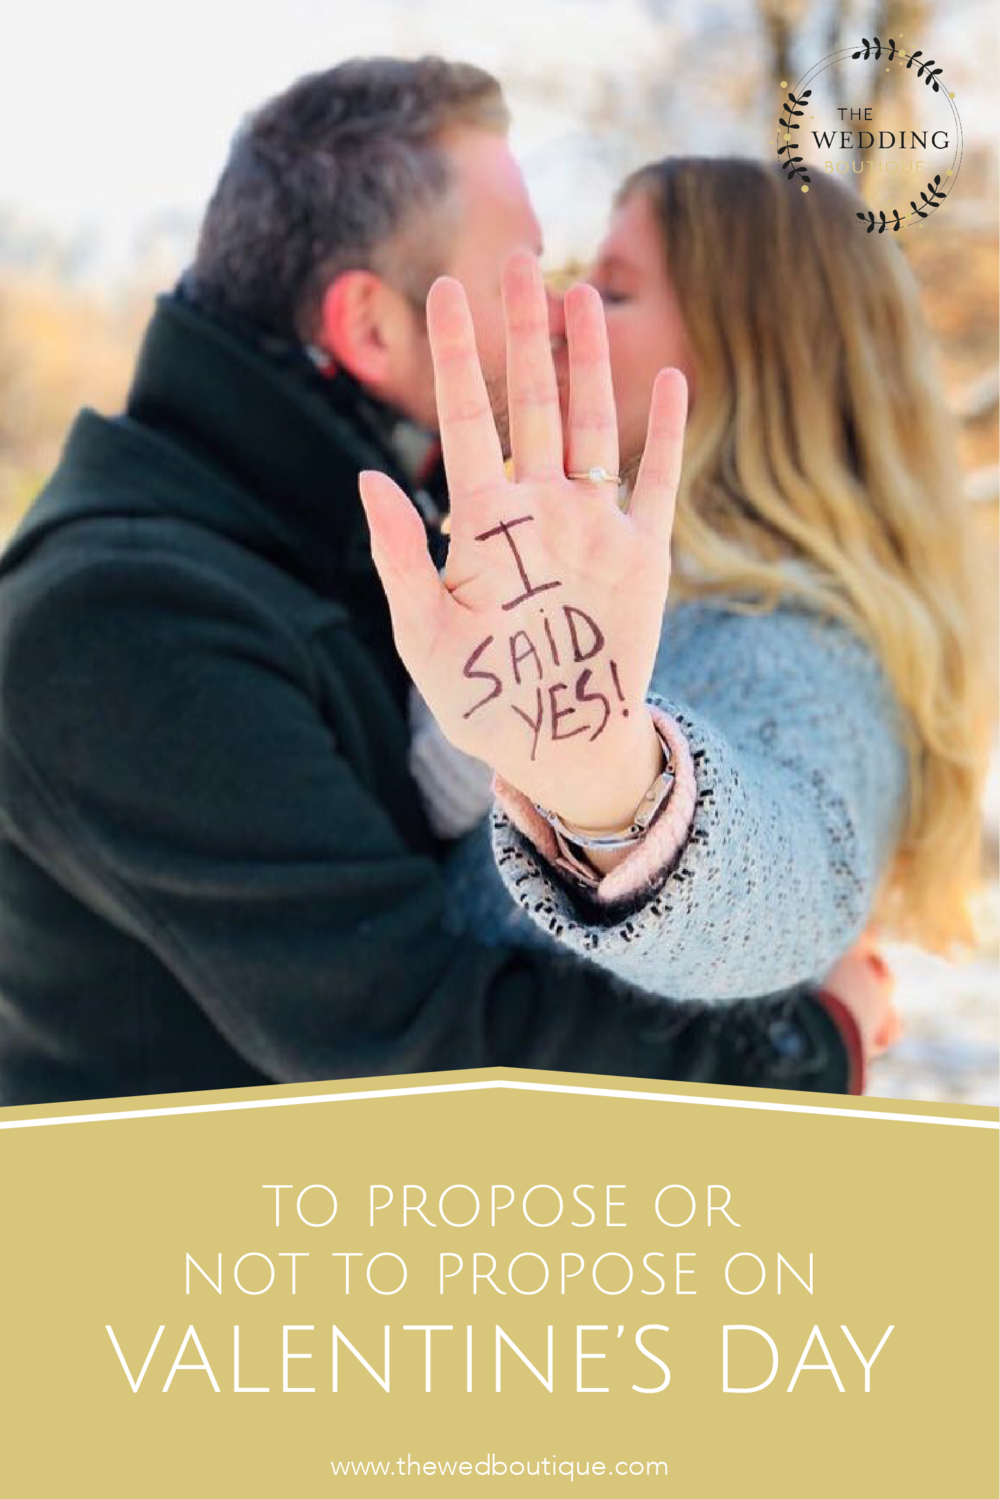 To propose or not to propose on Valentine's Day • The Wedding Boutique • Structure your wedding planning • www.thewedboutique.com